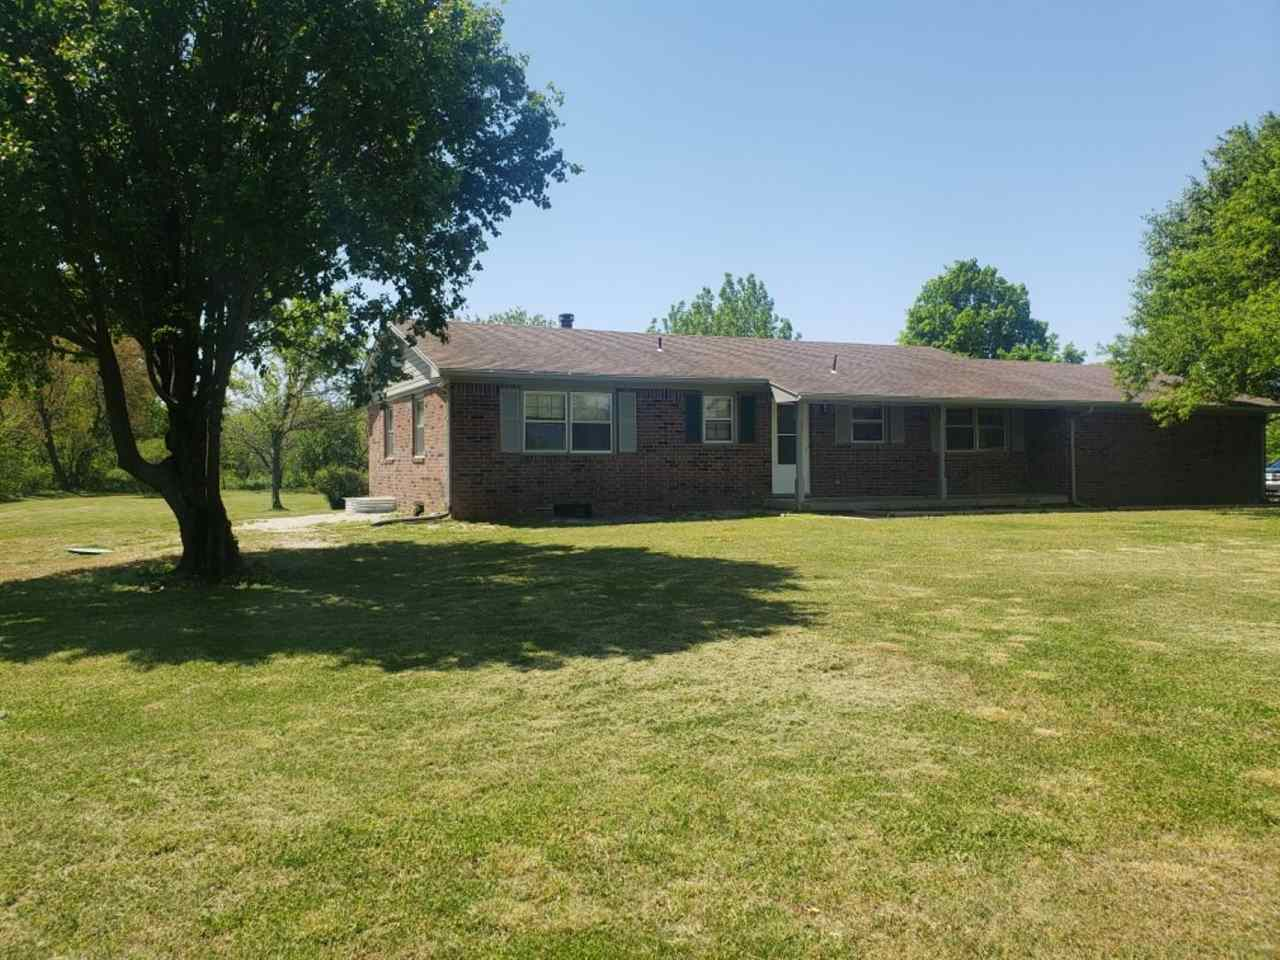 Totally remodeled, all electric, 3BR 2BA full brick ranch with over 1,600 sq ft of living space. NEW